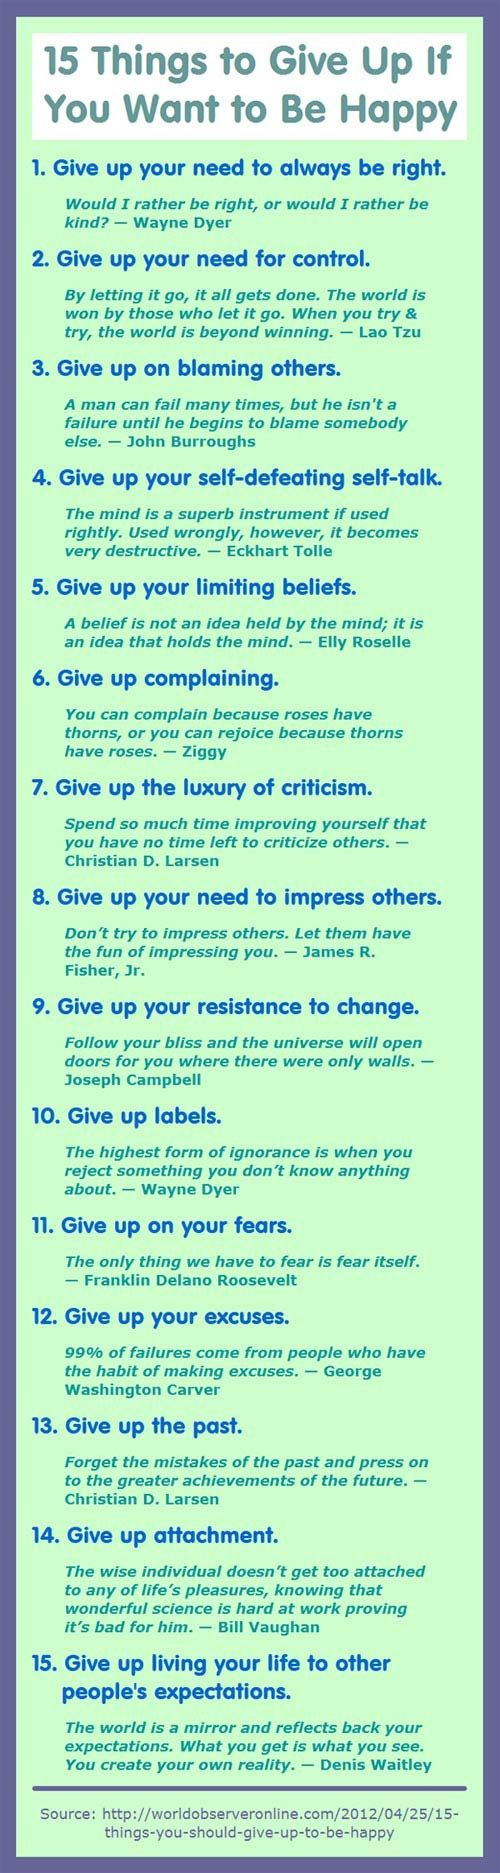 Things to give up if you want to be happy…